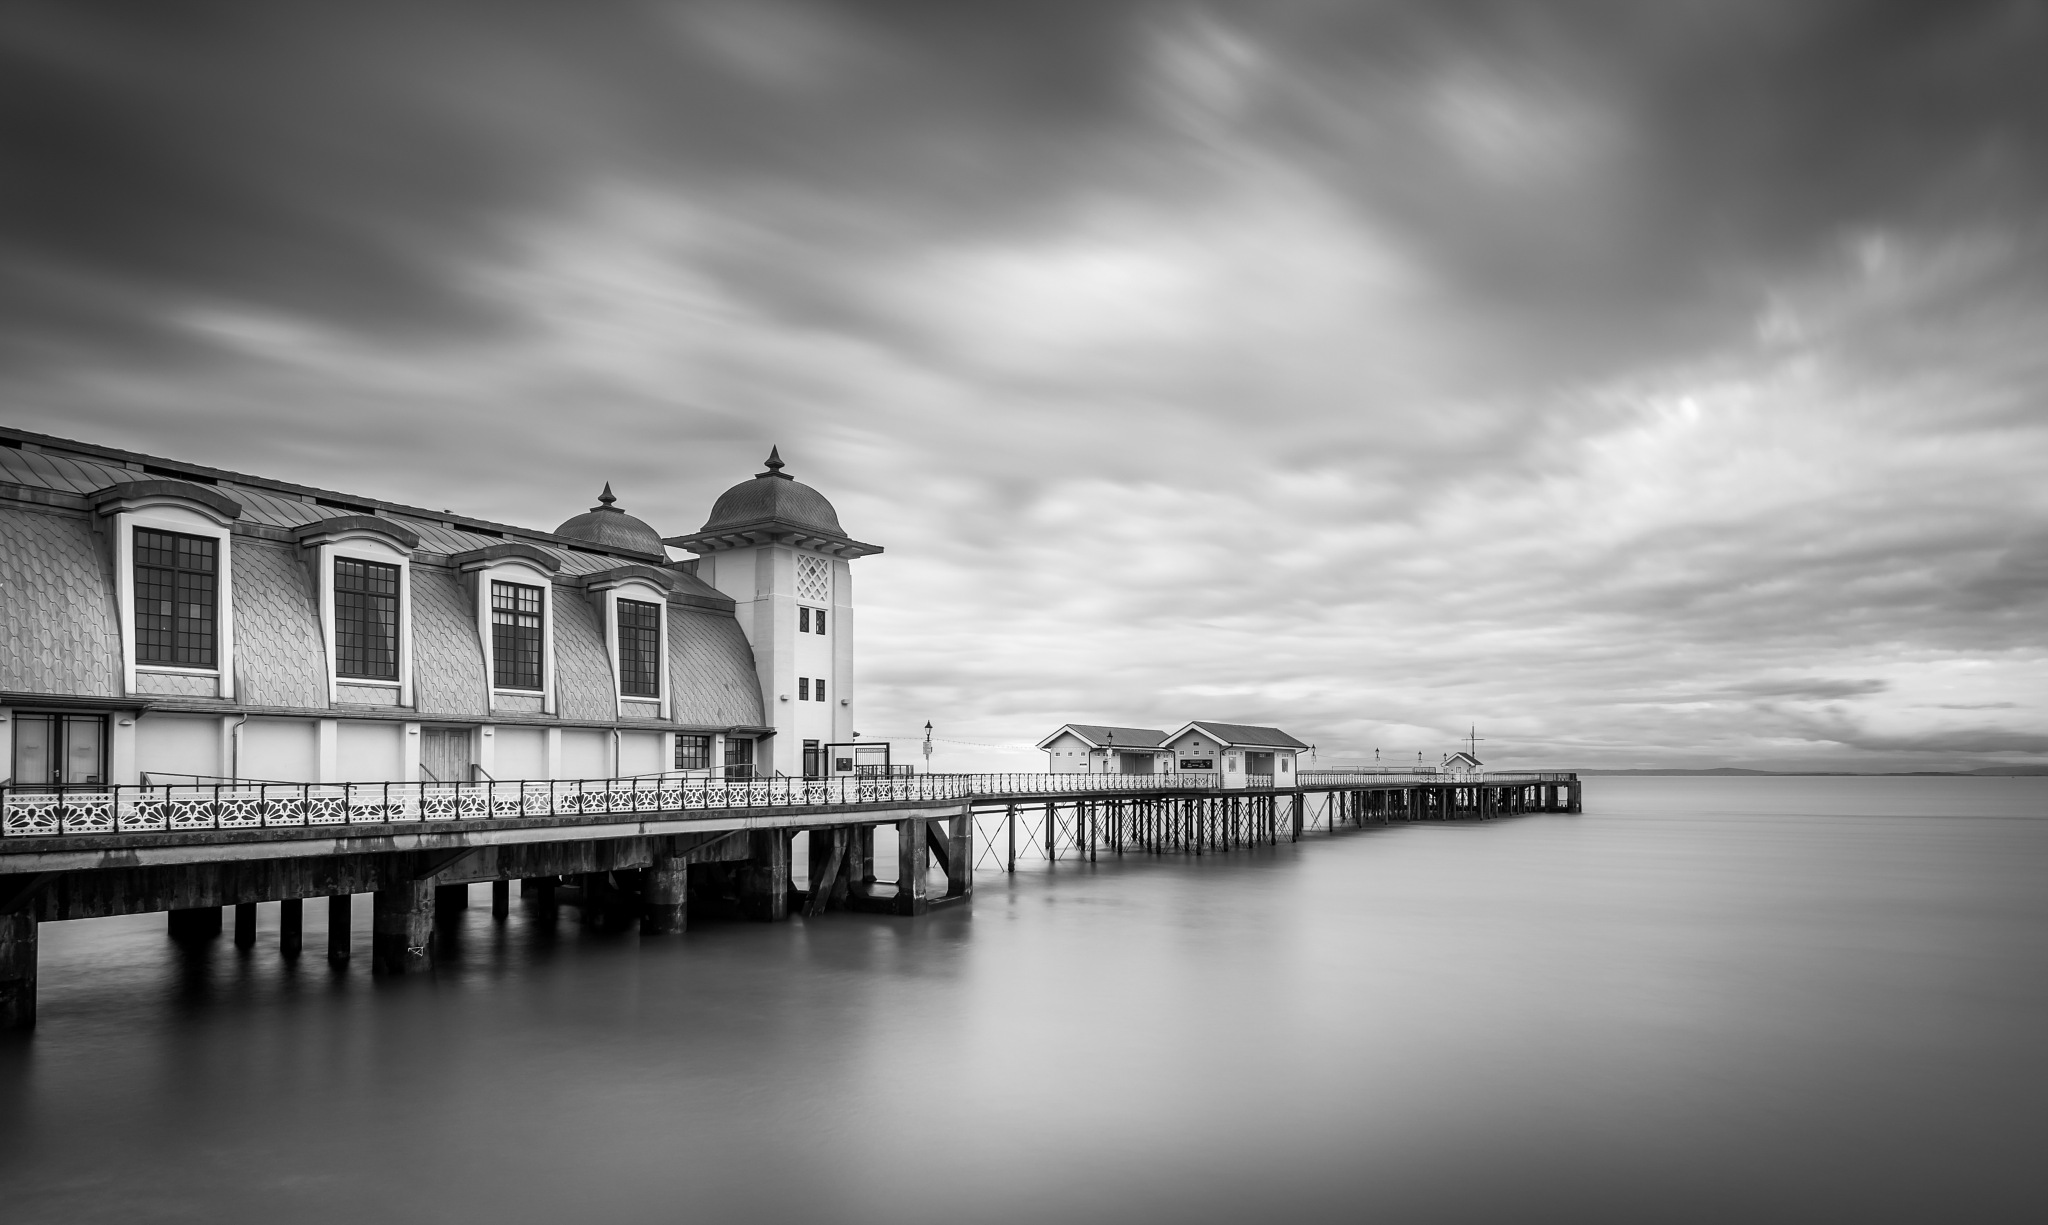 Penarth pier in black and white by andre.belg